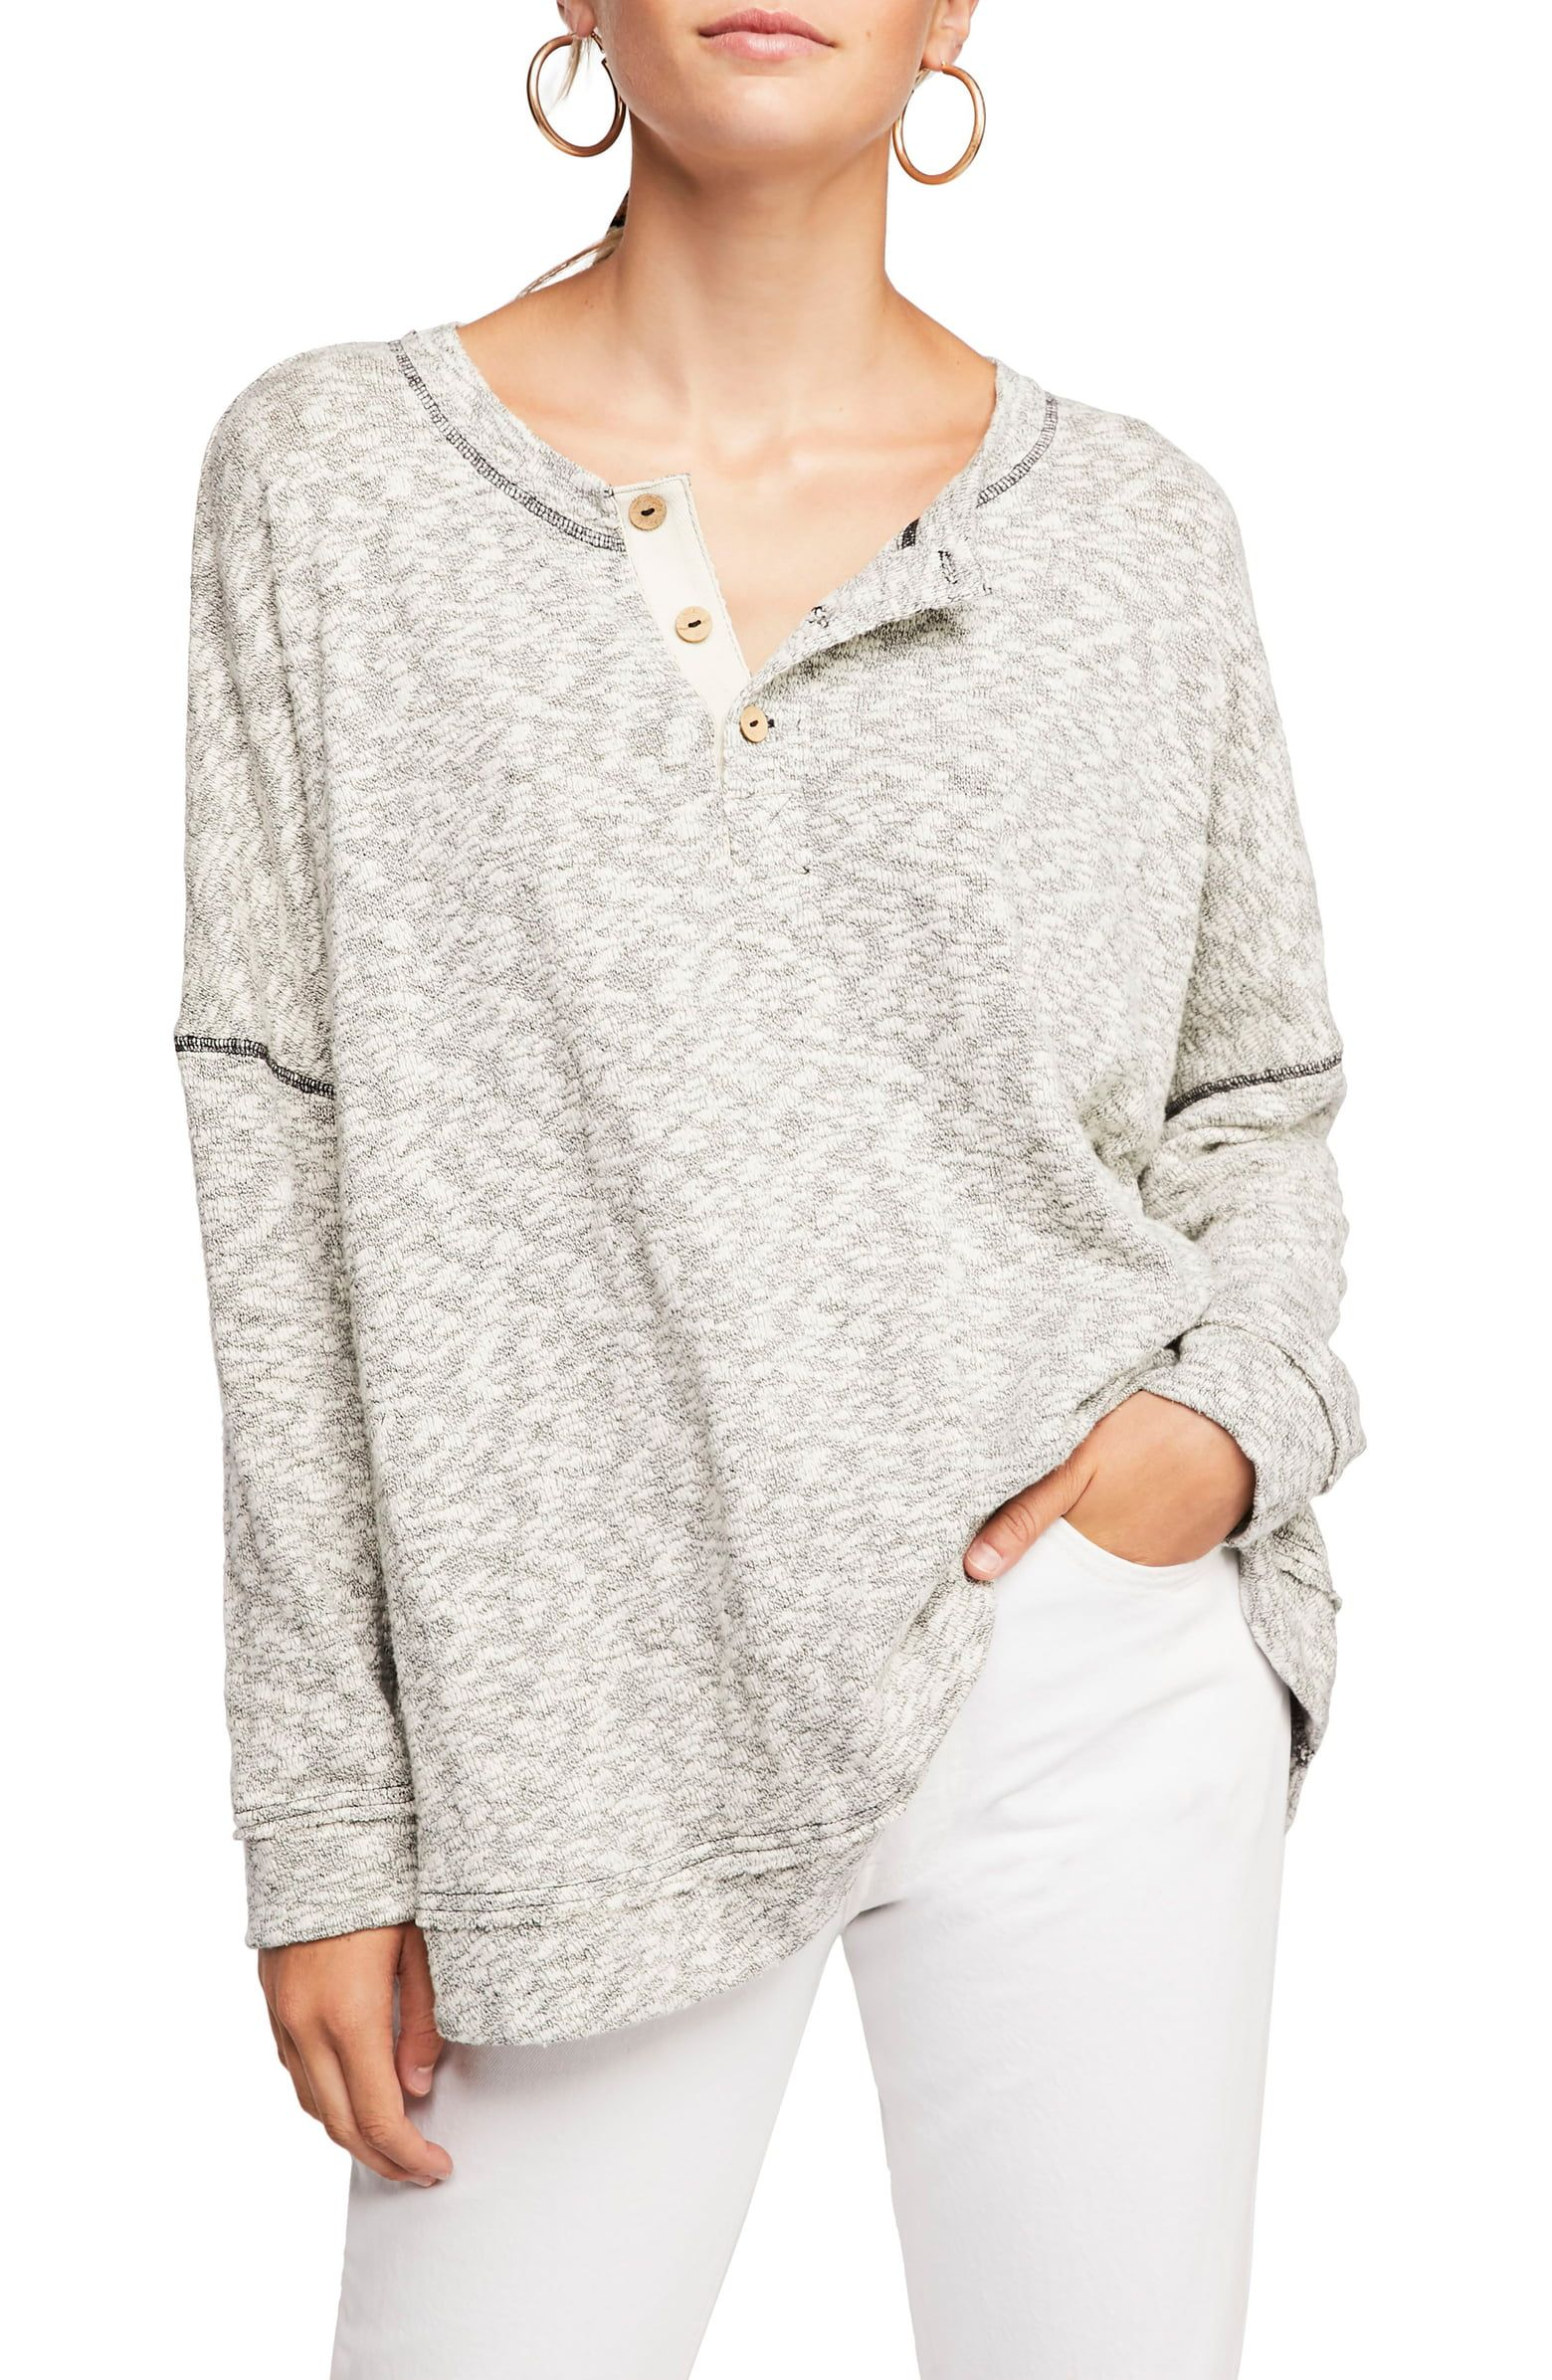 c5c5f2b7c55 Endless Summer by Free People Sleep to Dream Knit Top | Nordstrom ...